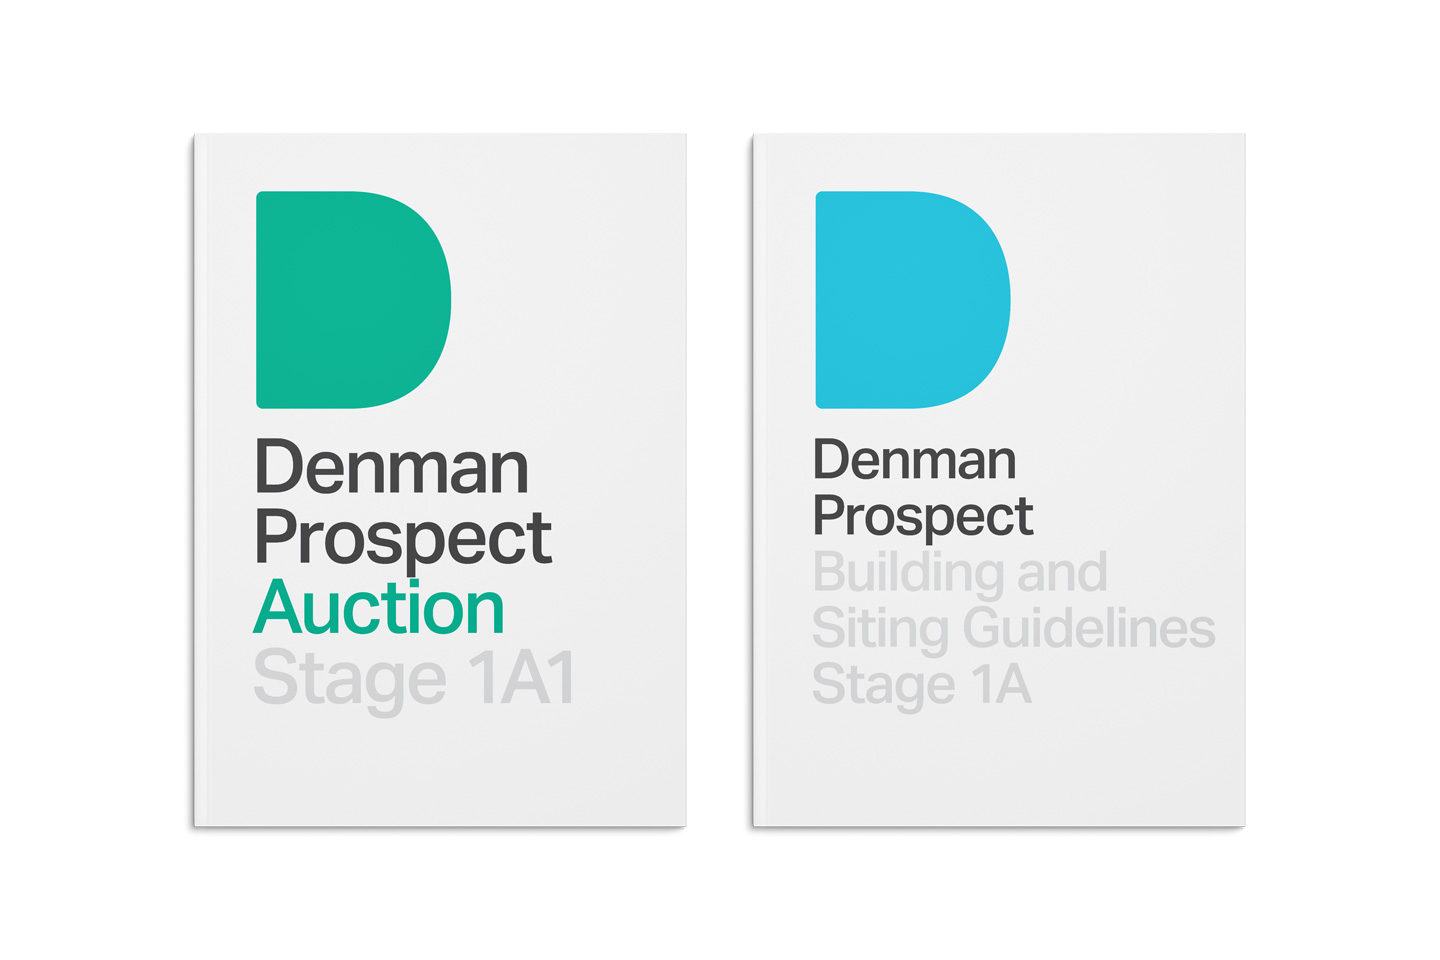 Design of the auction brochures for Denman Prospect